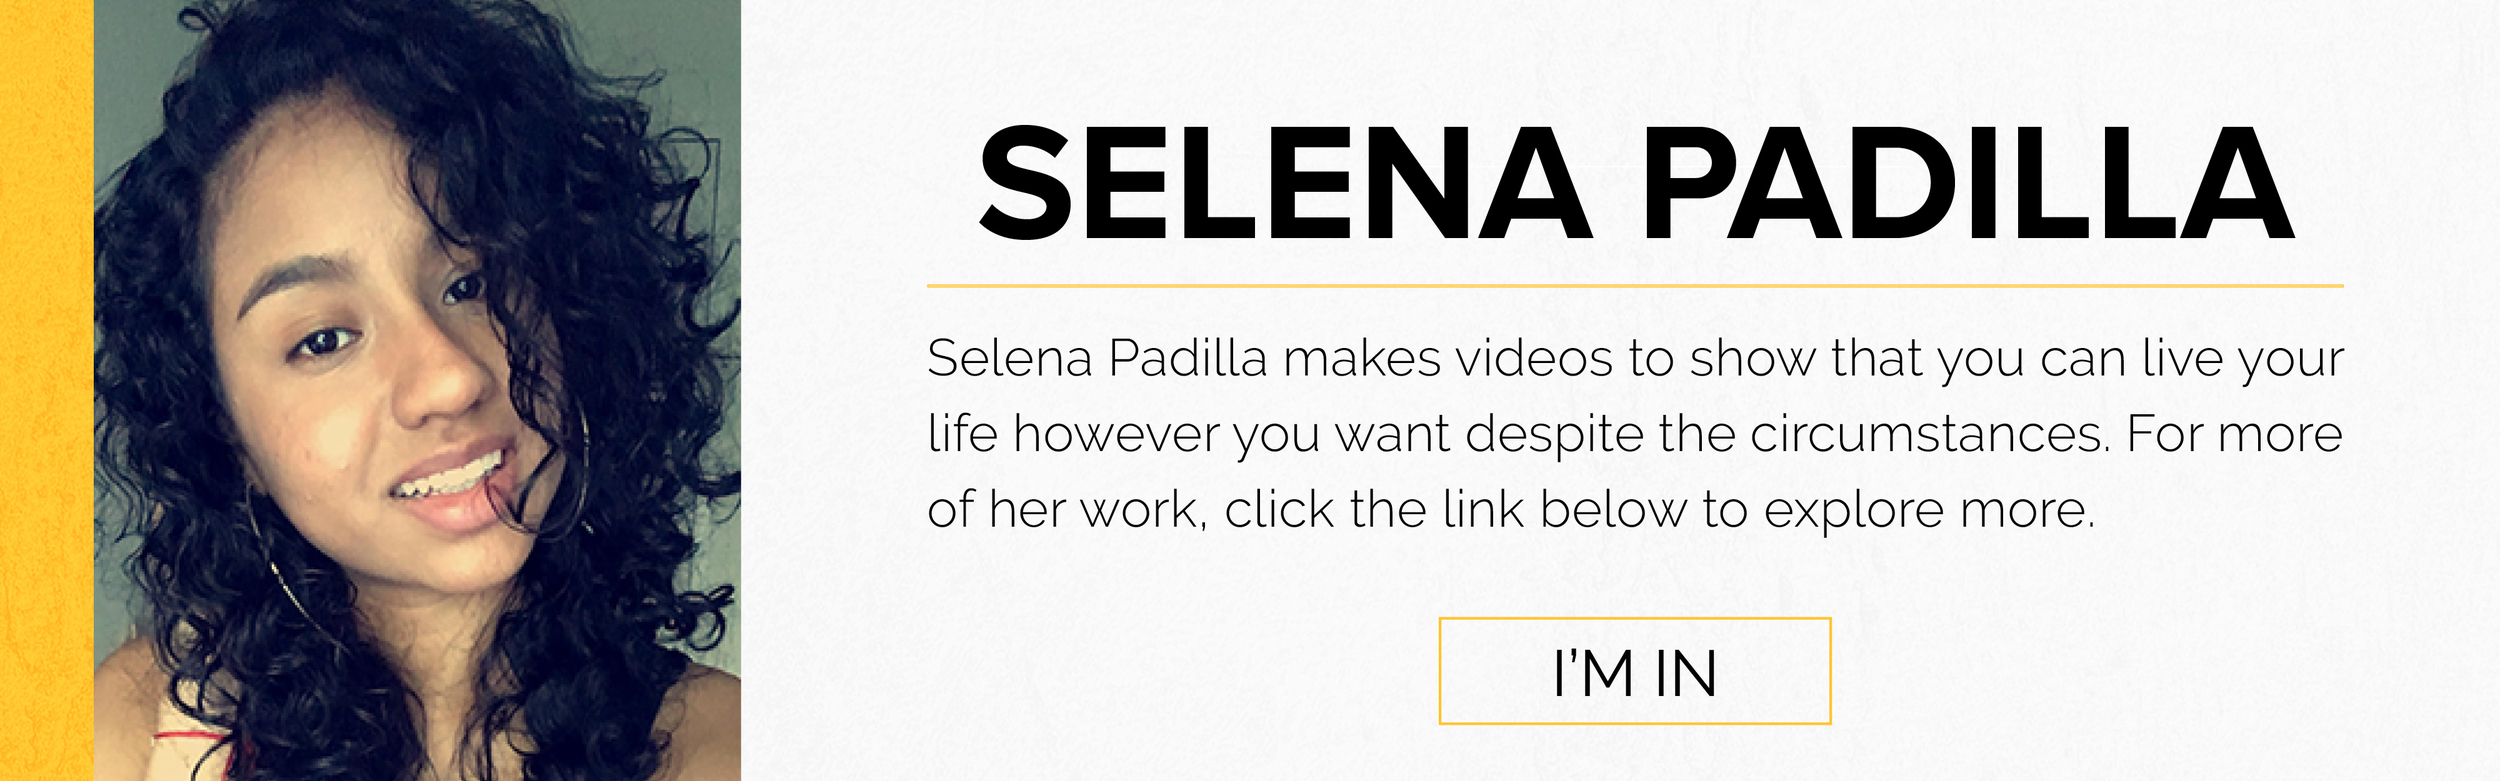 Selena Padilla makes videos to show that you can live your life however you want despite the circumstances.